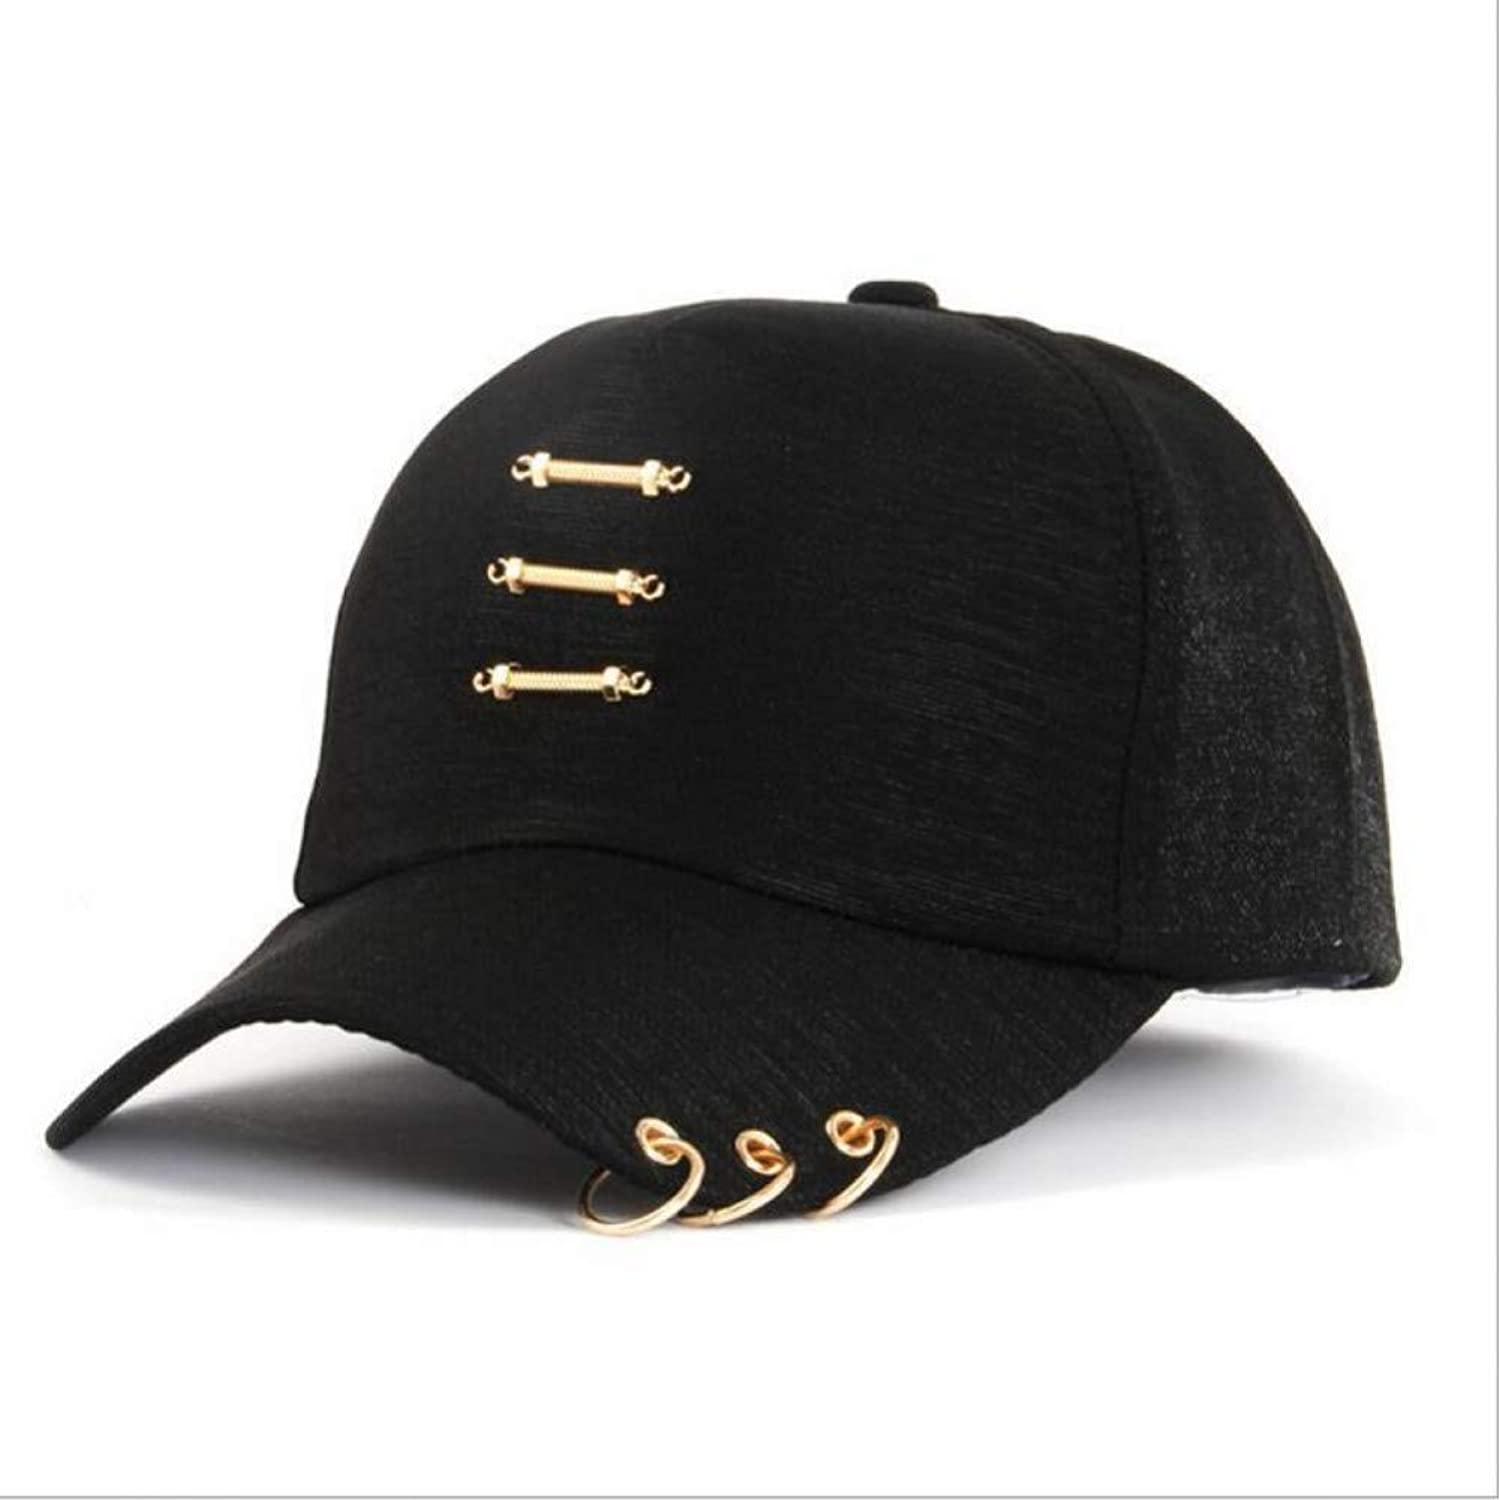 JINRMP Dad Hat Fashion Ring Baseball Cap Men Women Snapback Hip Hop Hats Solid Unisex Curved Brim Caps Casual Cotton